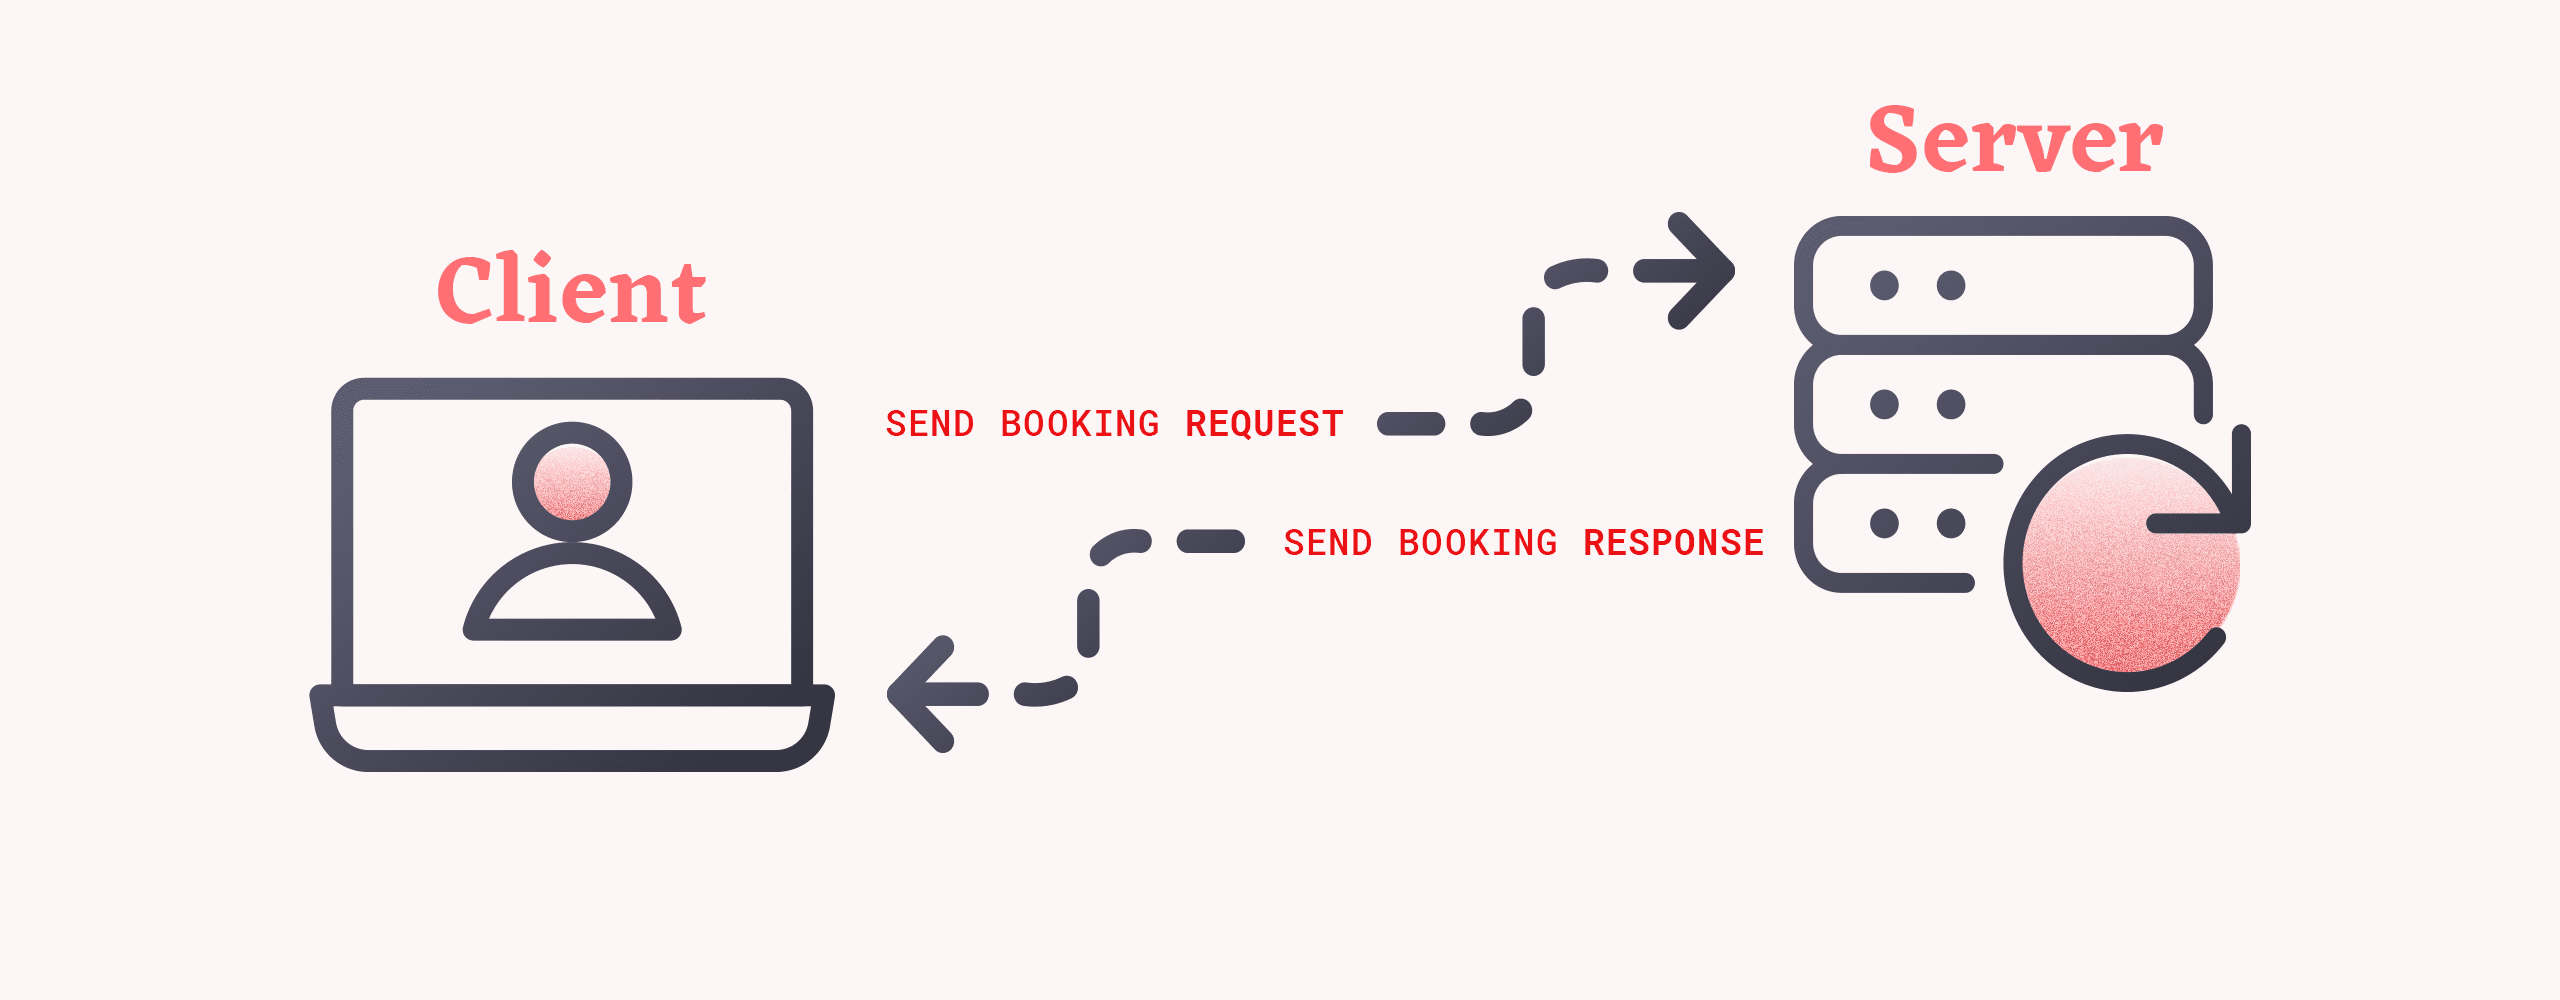 A visual representation of synchronous processing for booking requests